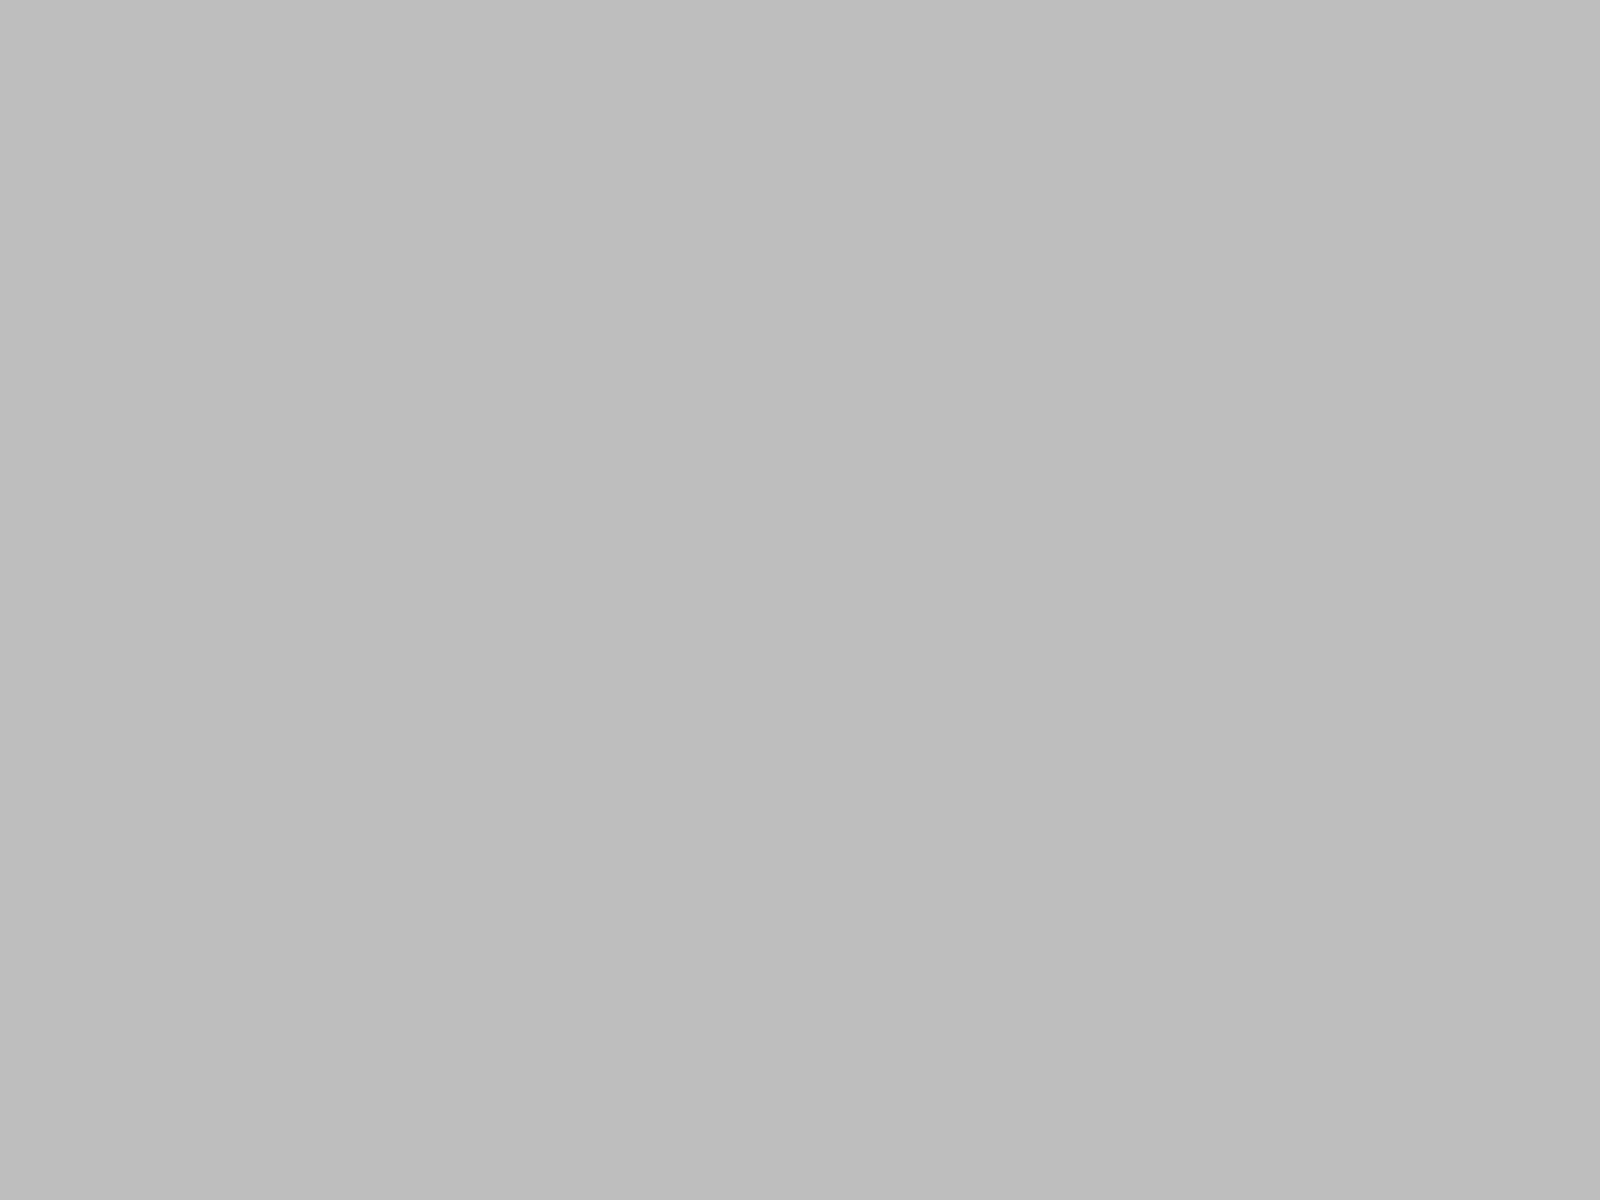 1600x1200 Gray X11 Gui Gray Solid Color Background